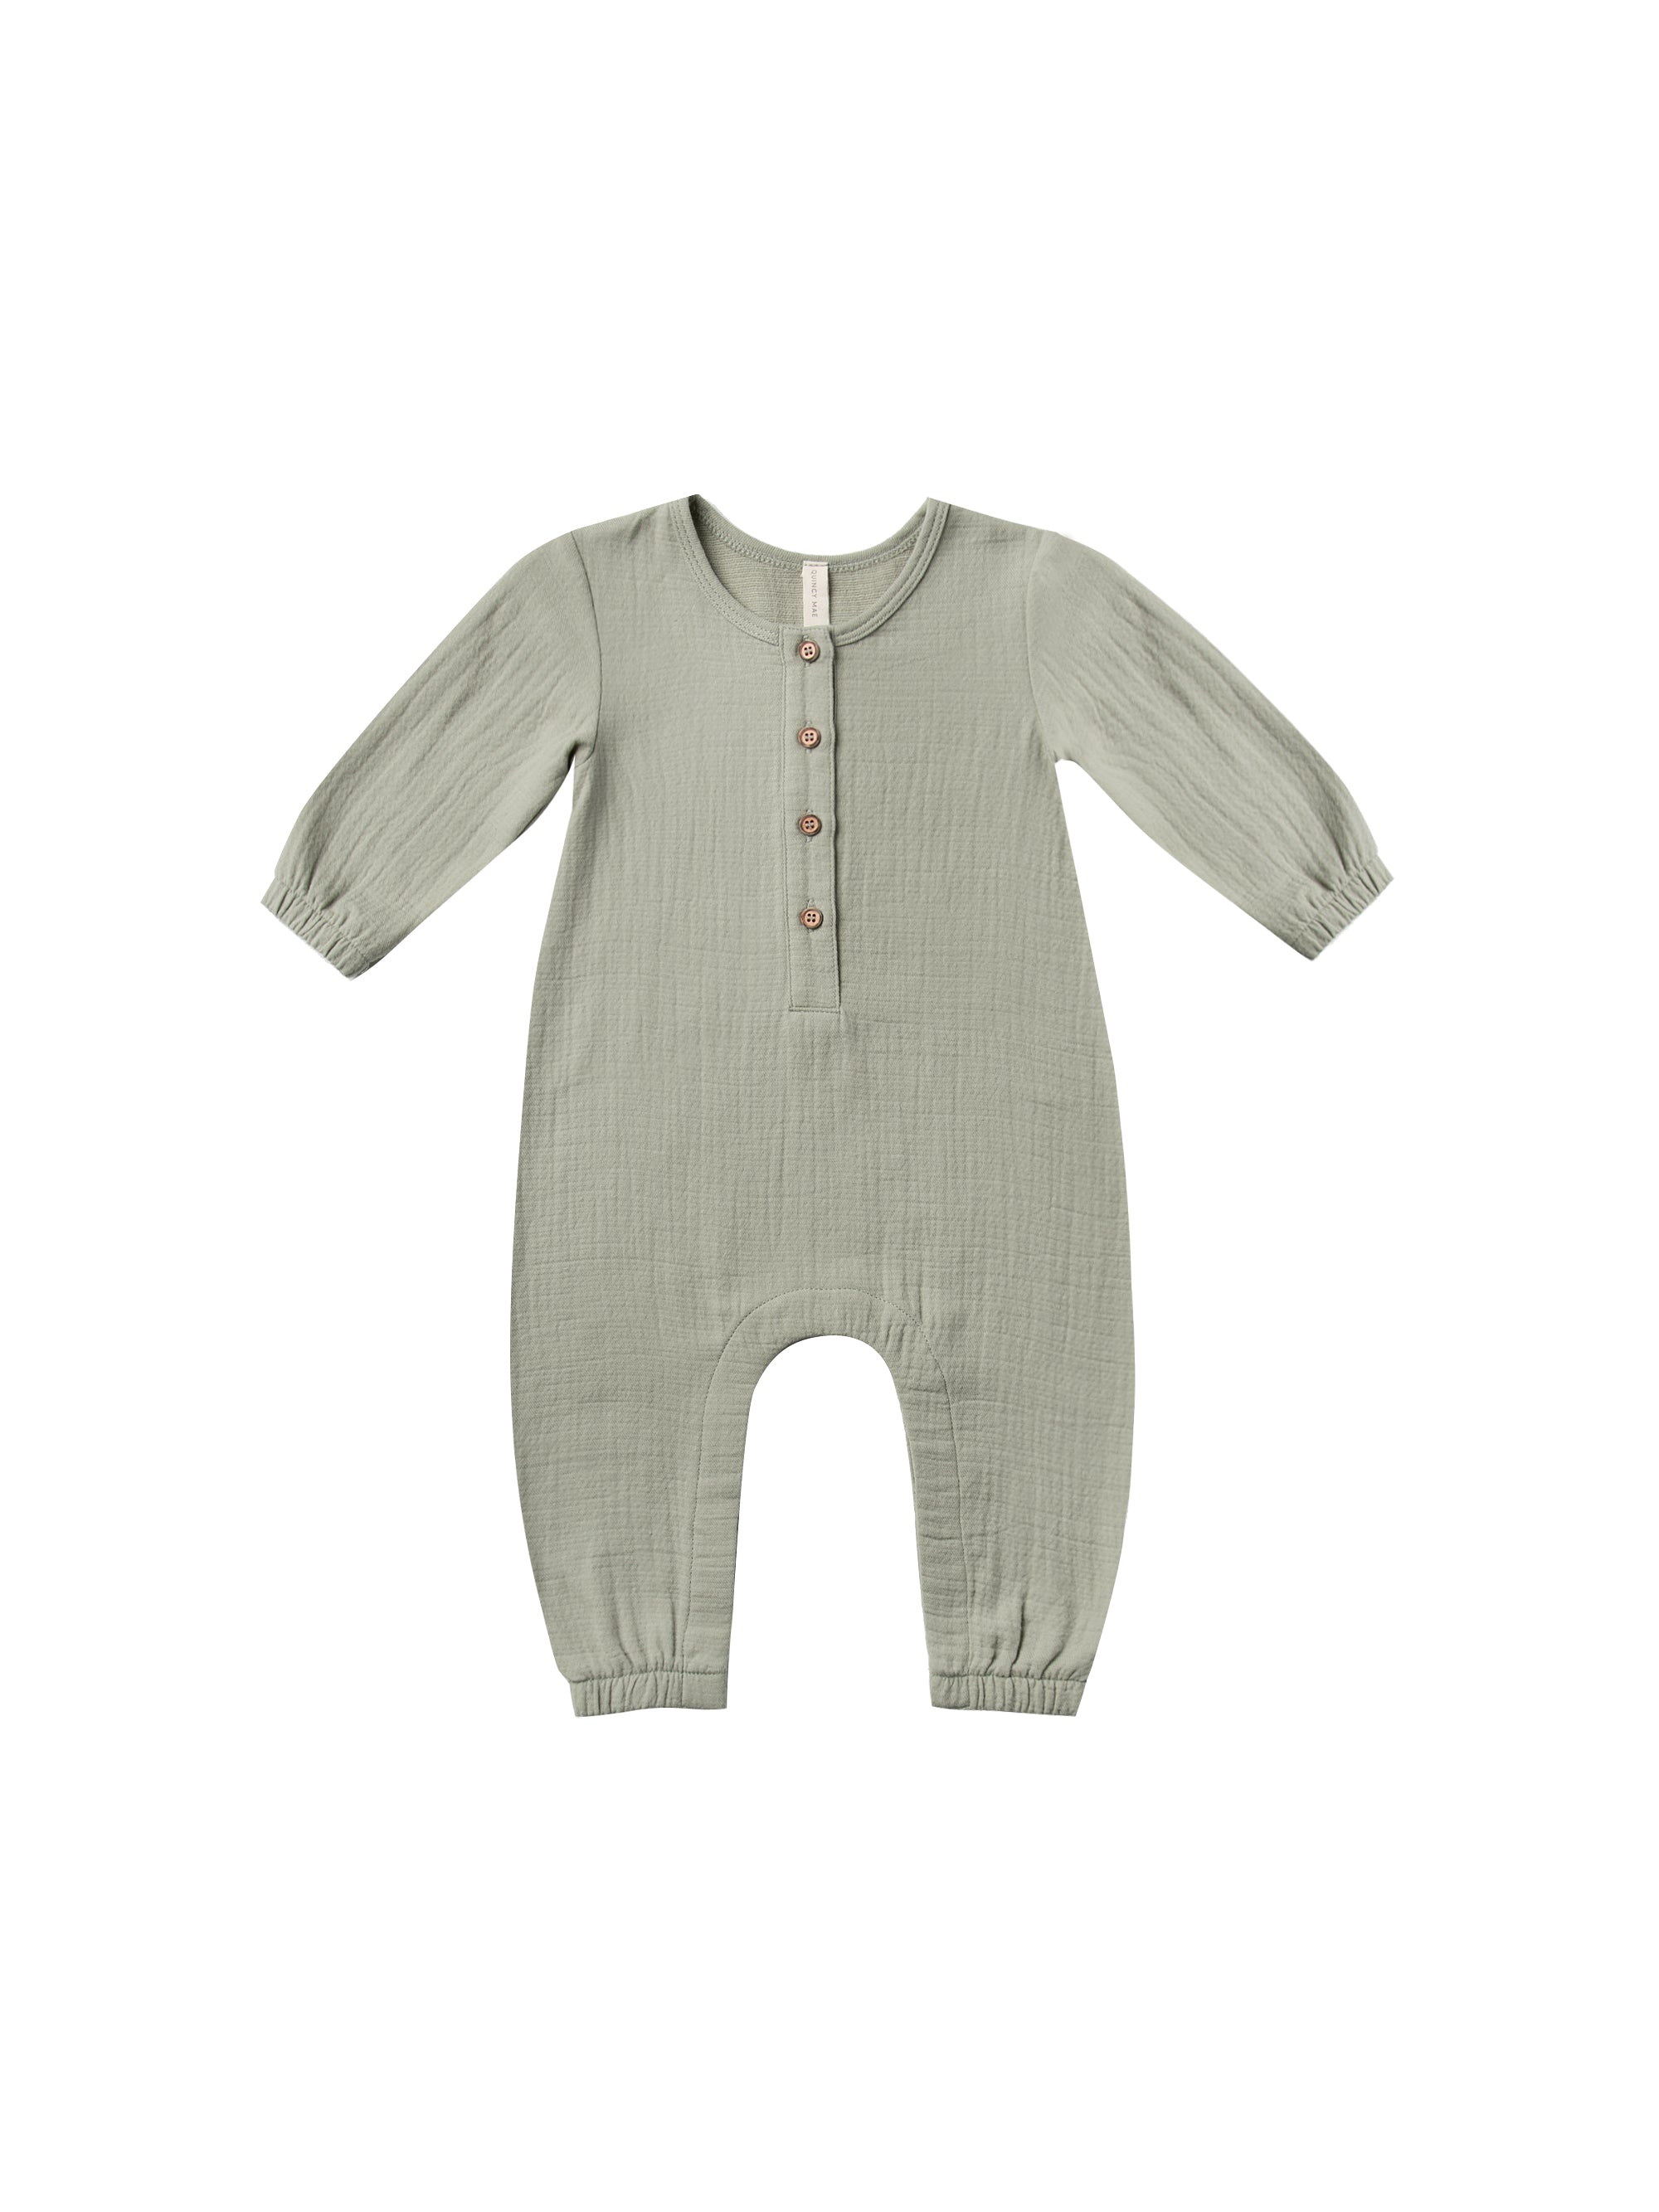 QUINCY MAE woven JUMPSUIT / SAGE